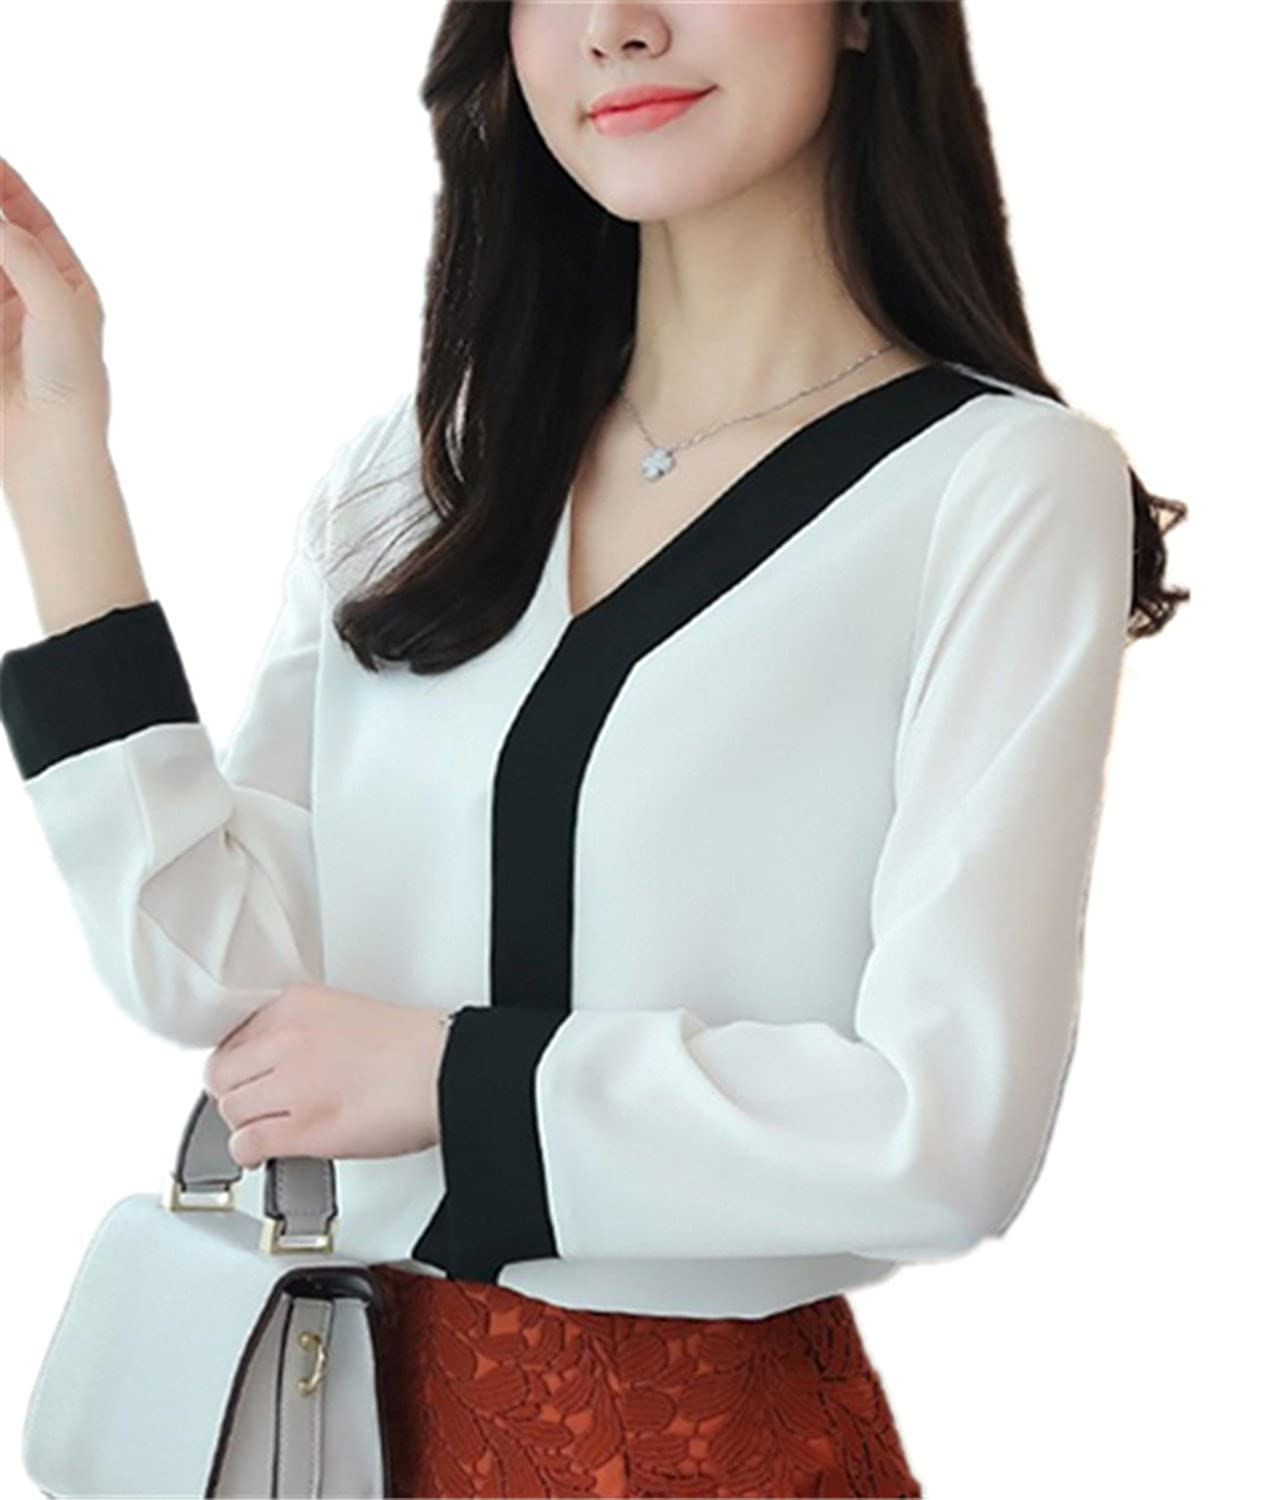 SDHEIJKY Office Chiffon Blouse Women Fashion V-Neck Long Sleeve Patchwork Shirt at Amazon Womens Clothing store: